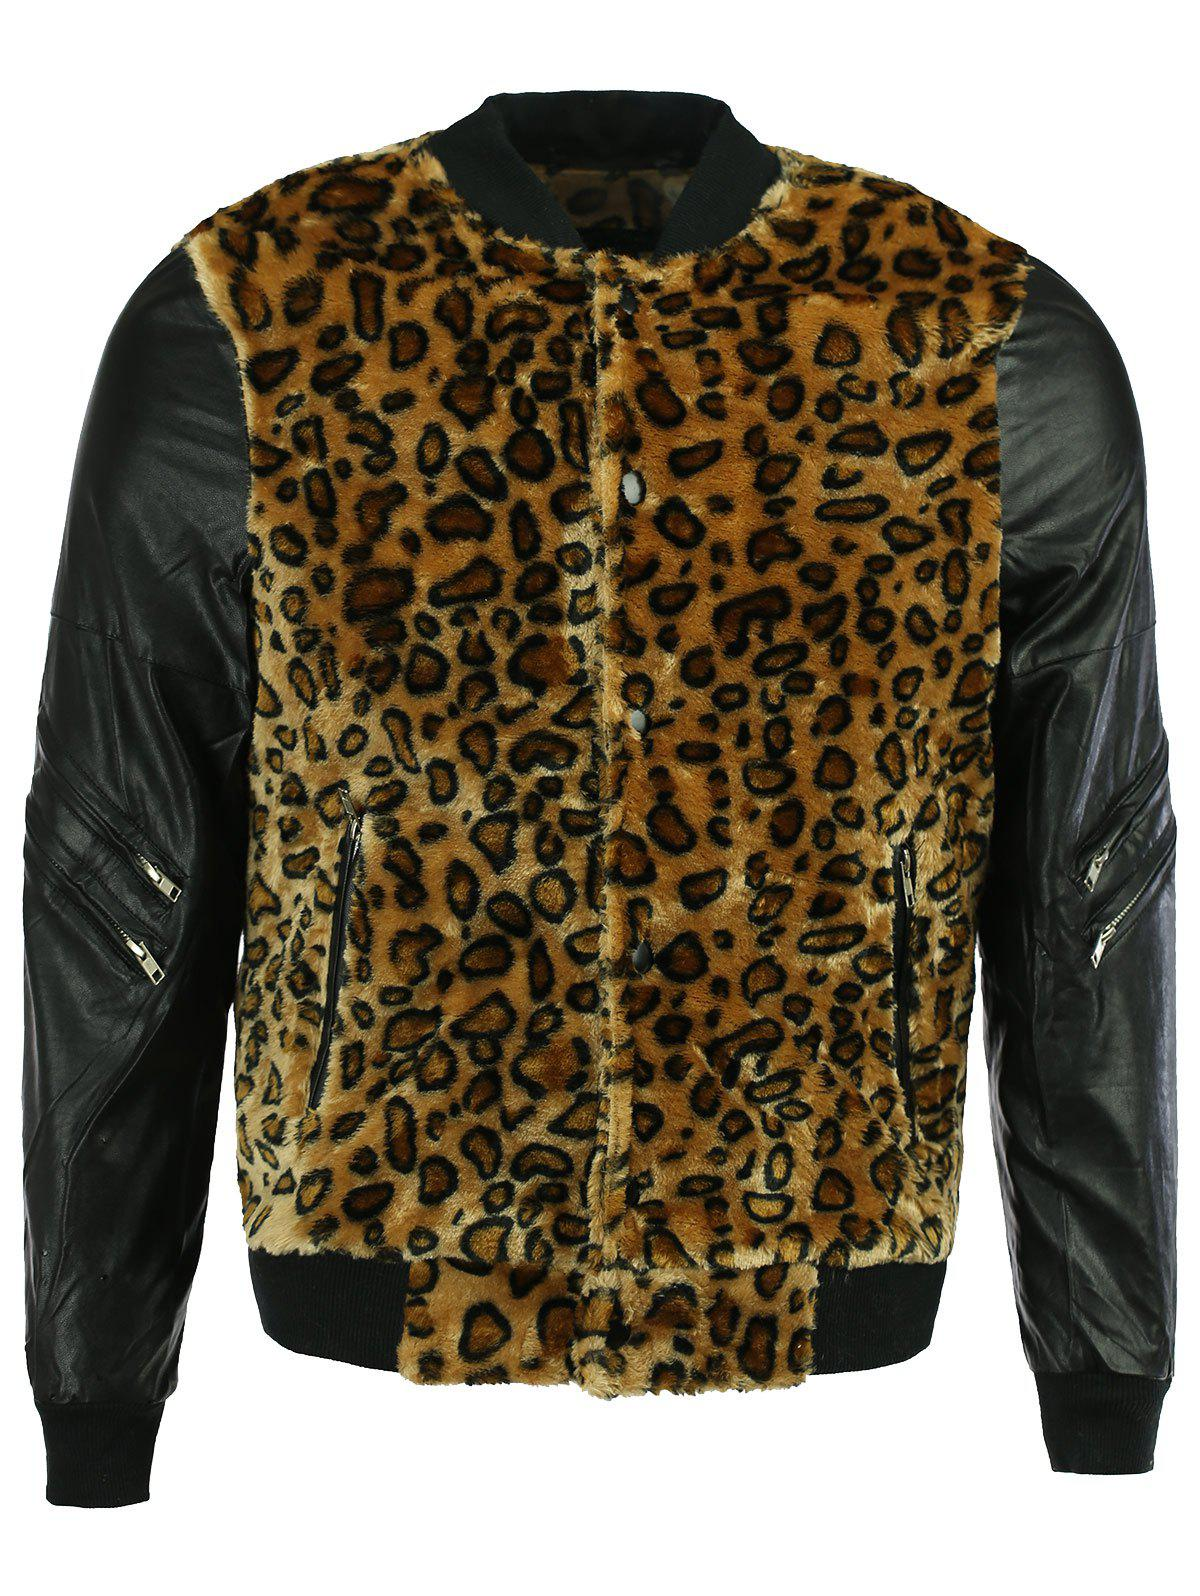 PU Leather Splicing Leopard Pattern Bomber Jacket